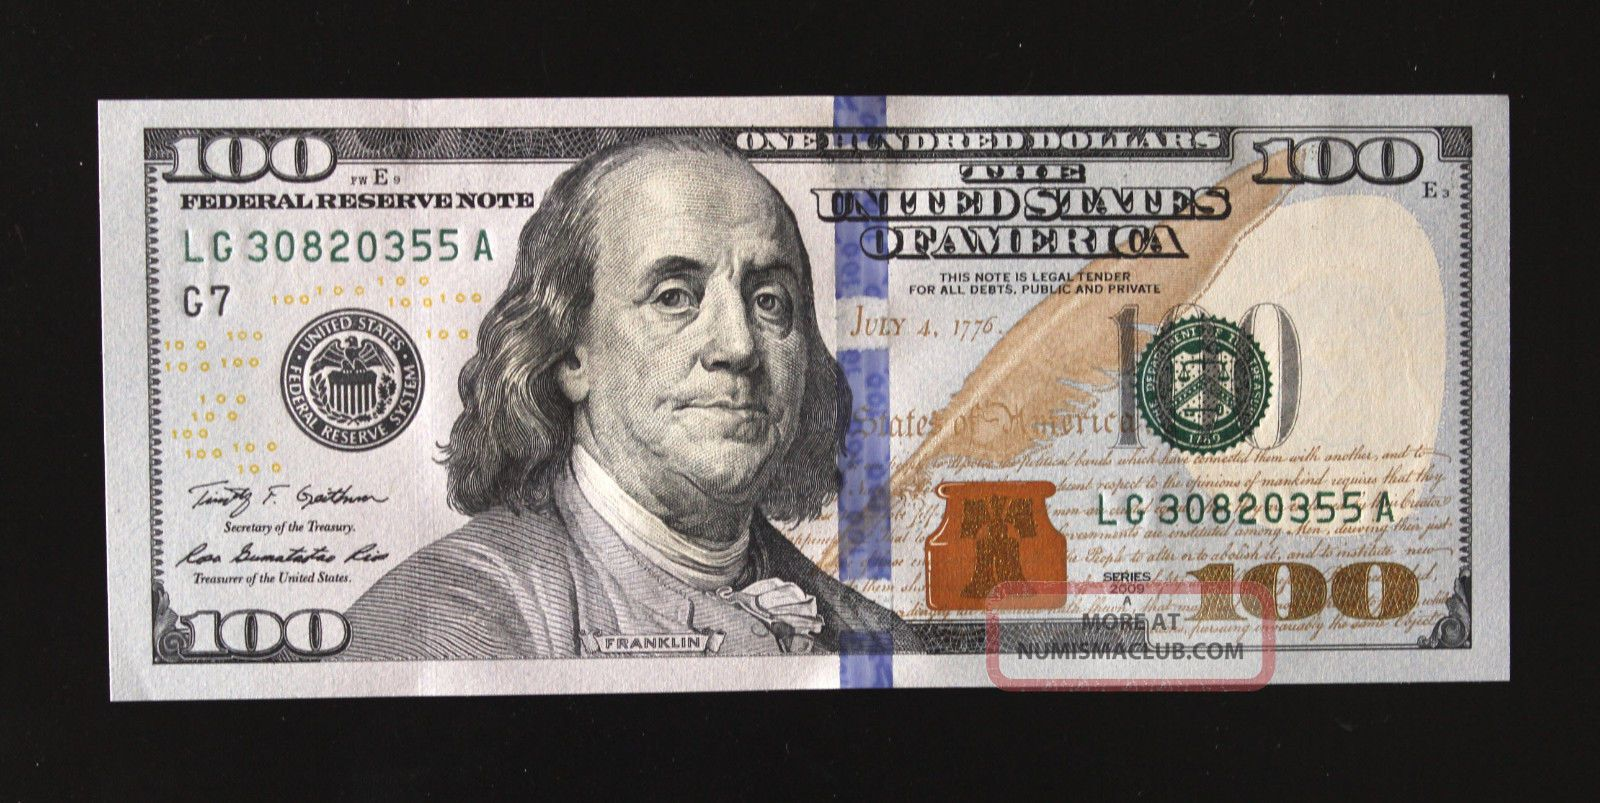 !$100 Bill 2009 series! One Hundred Dollar Bill Circulated to Uncirculated